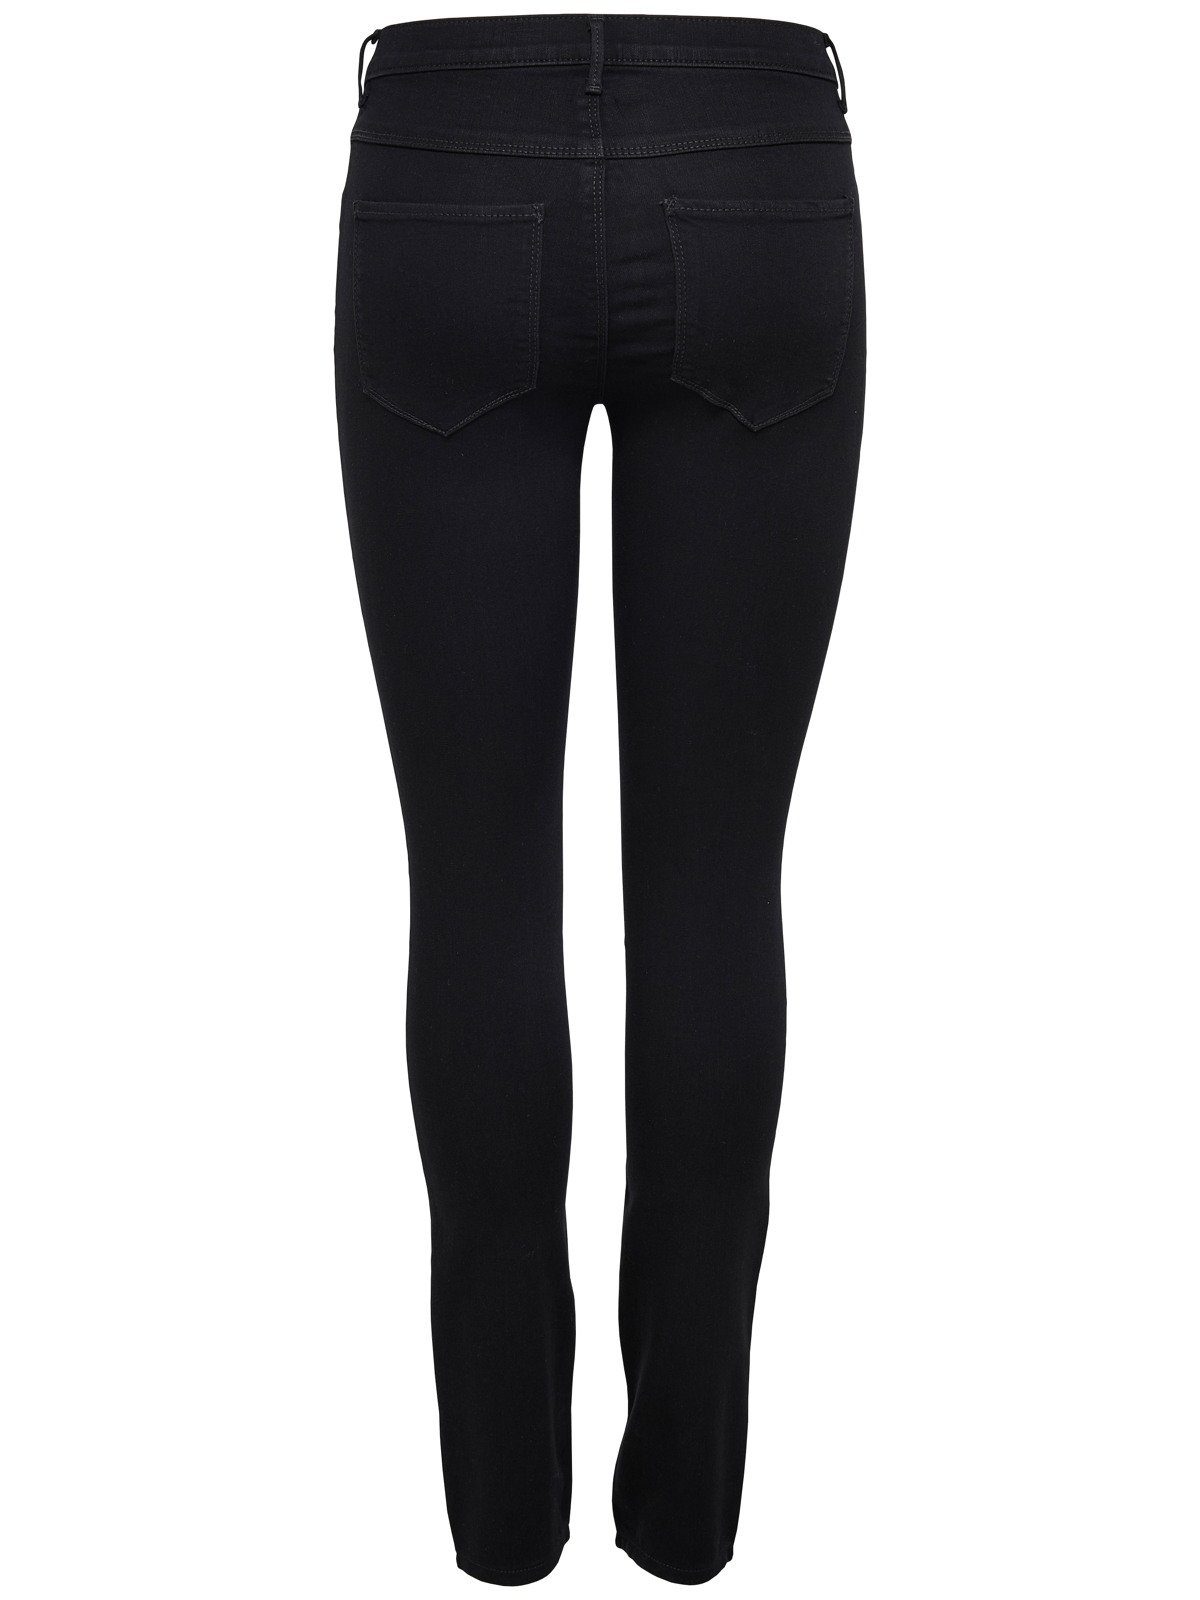 only damen stretch jeans look r hre skinny hose schwarz jeggings treggings neu ebay. Black Bedroom Furniture Sets. Home Design Ideas